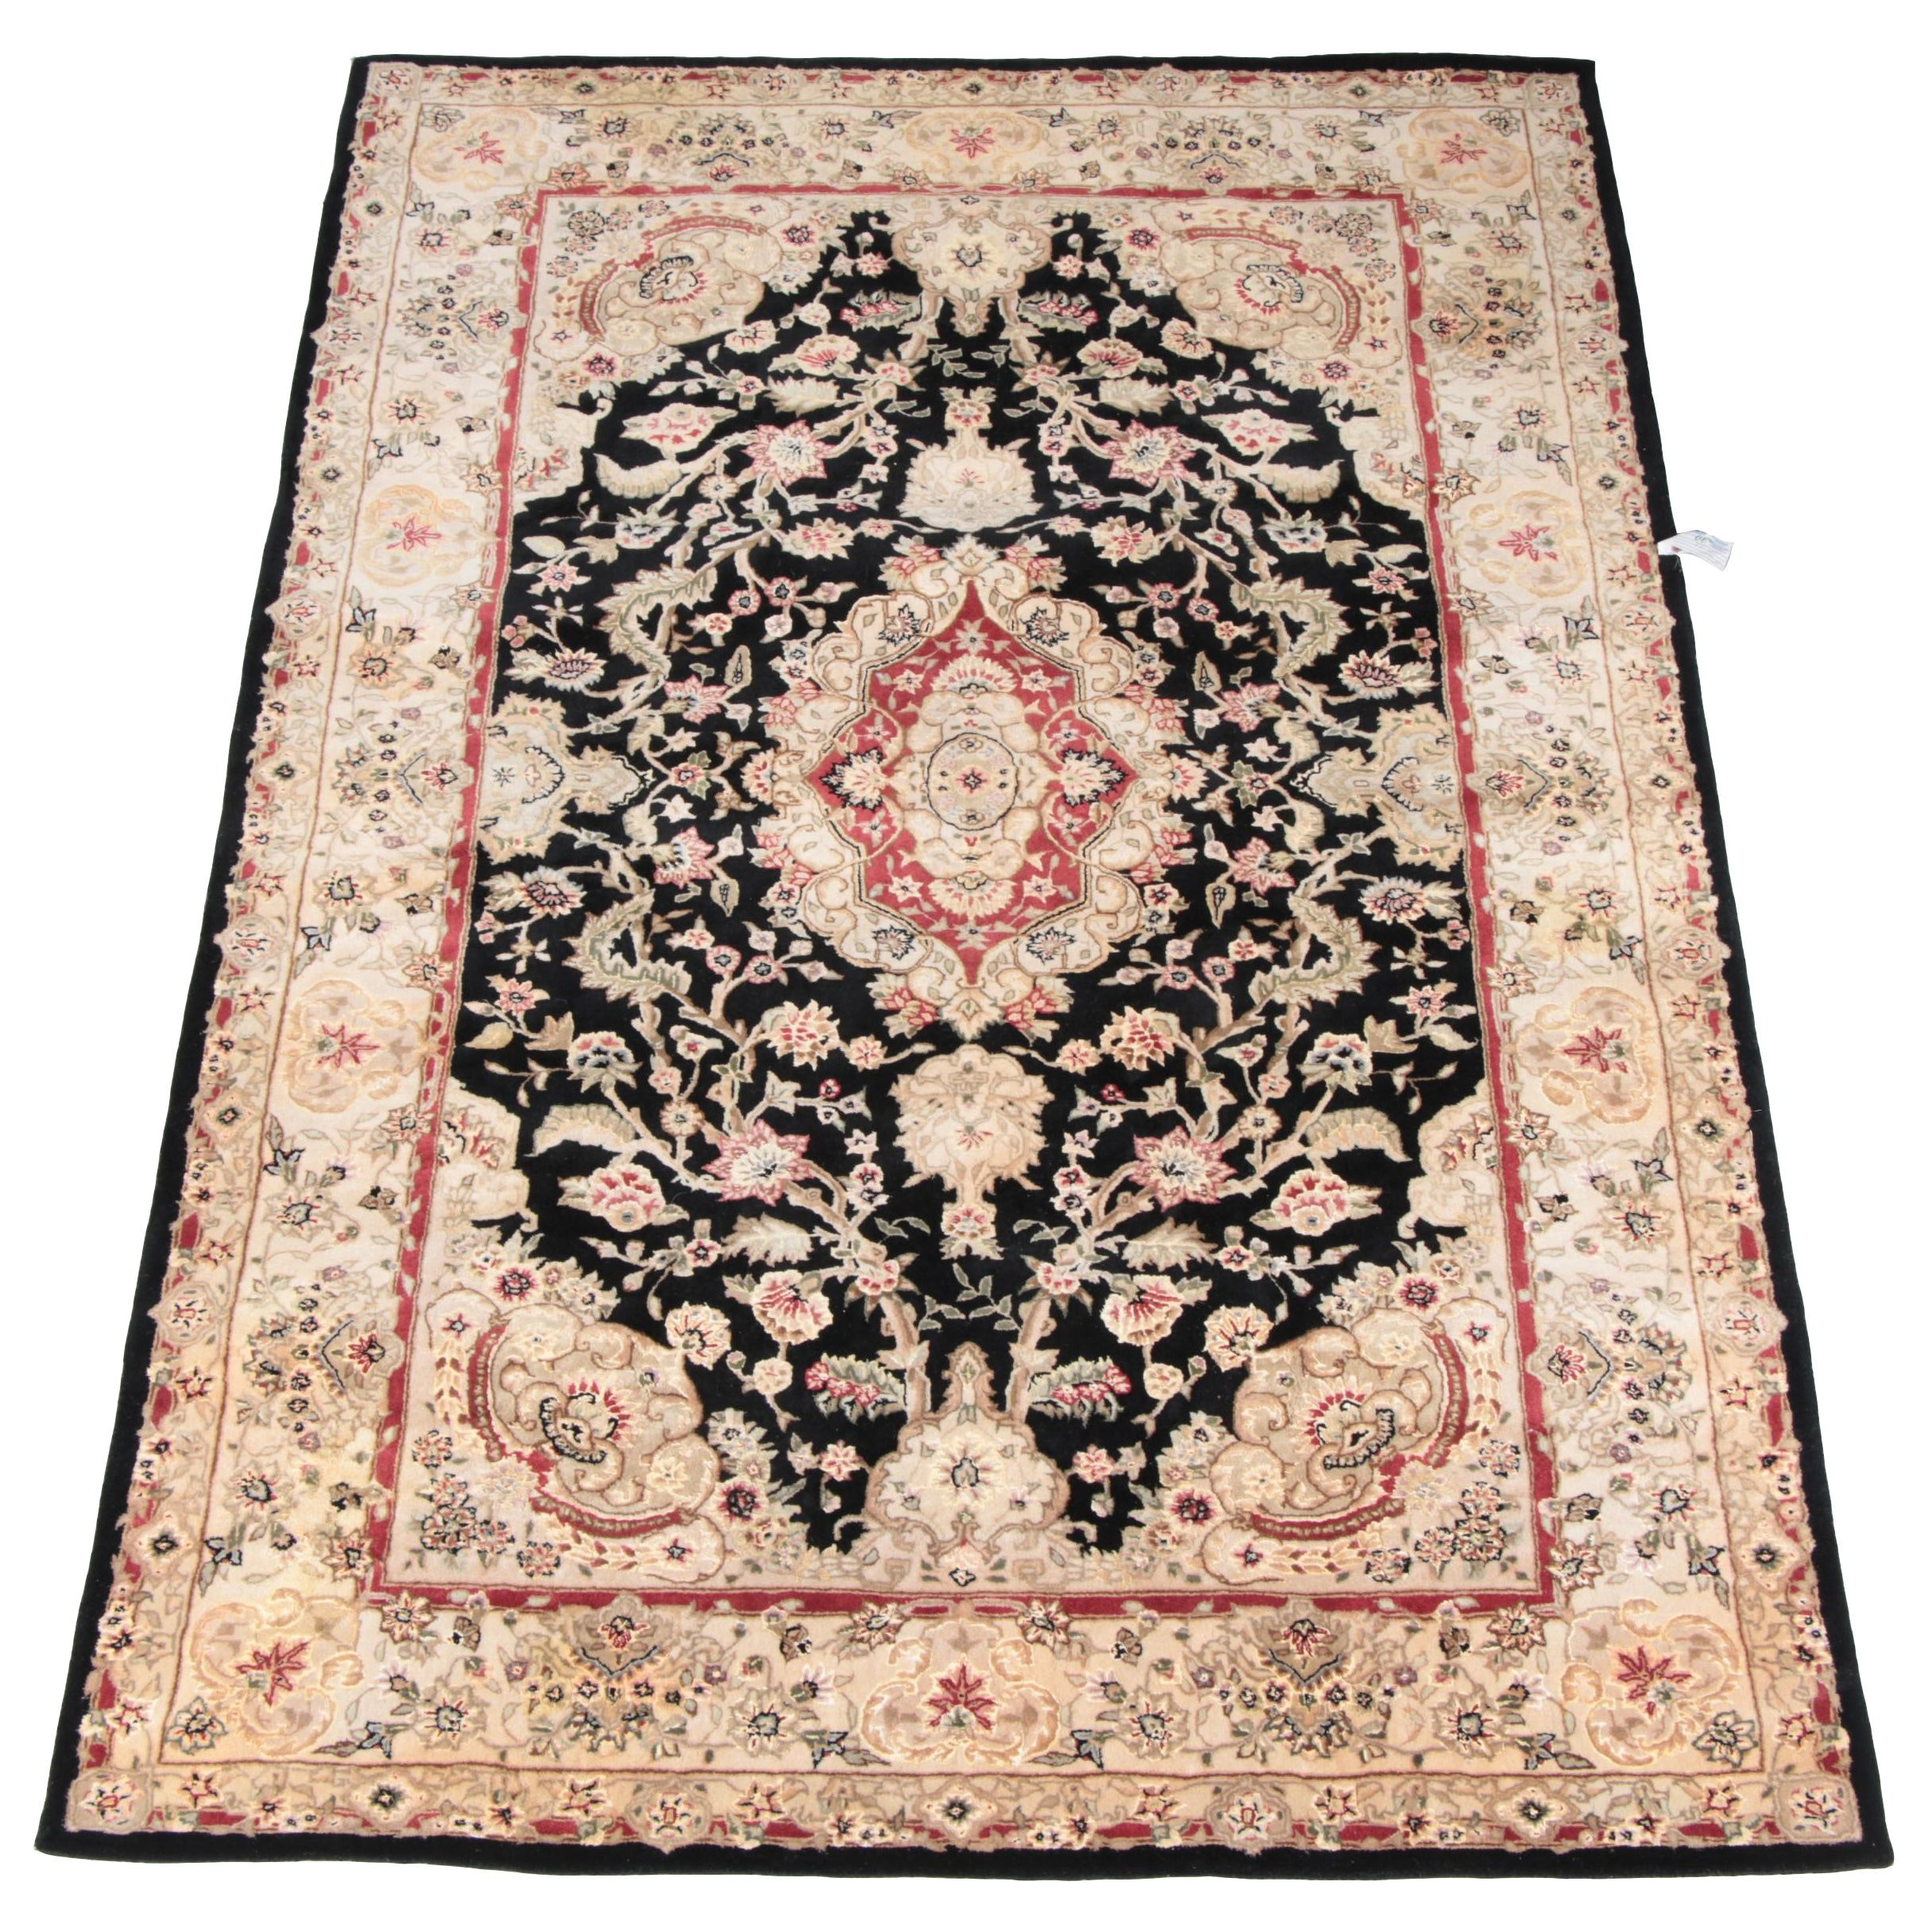 Tufted Persian-Style Area Rug